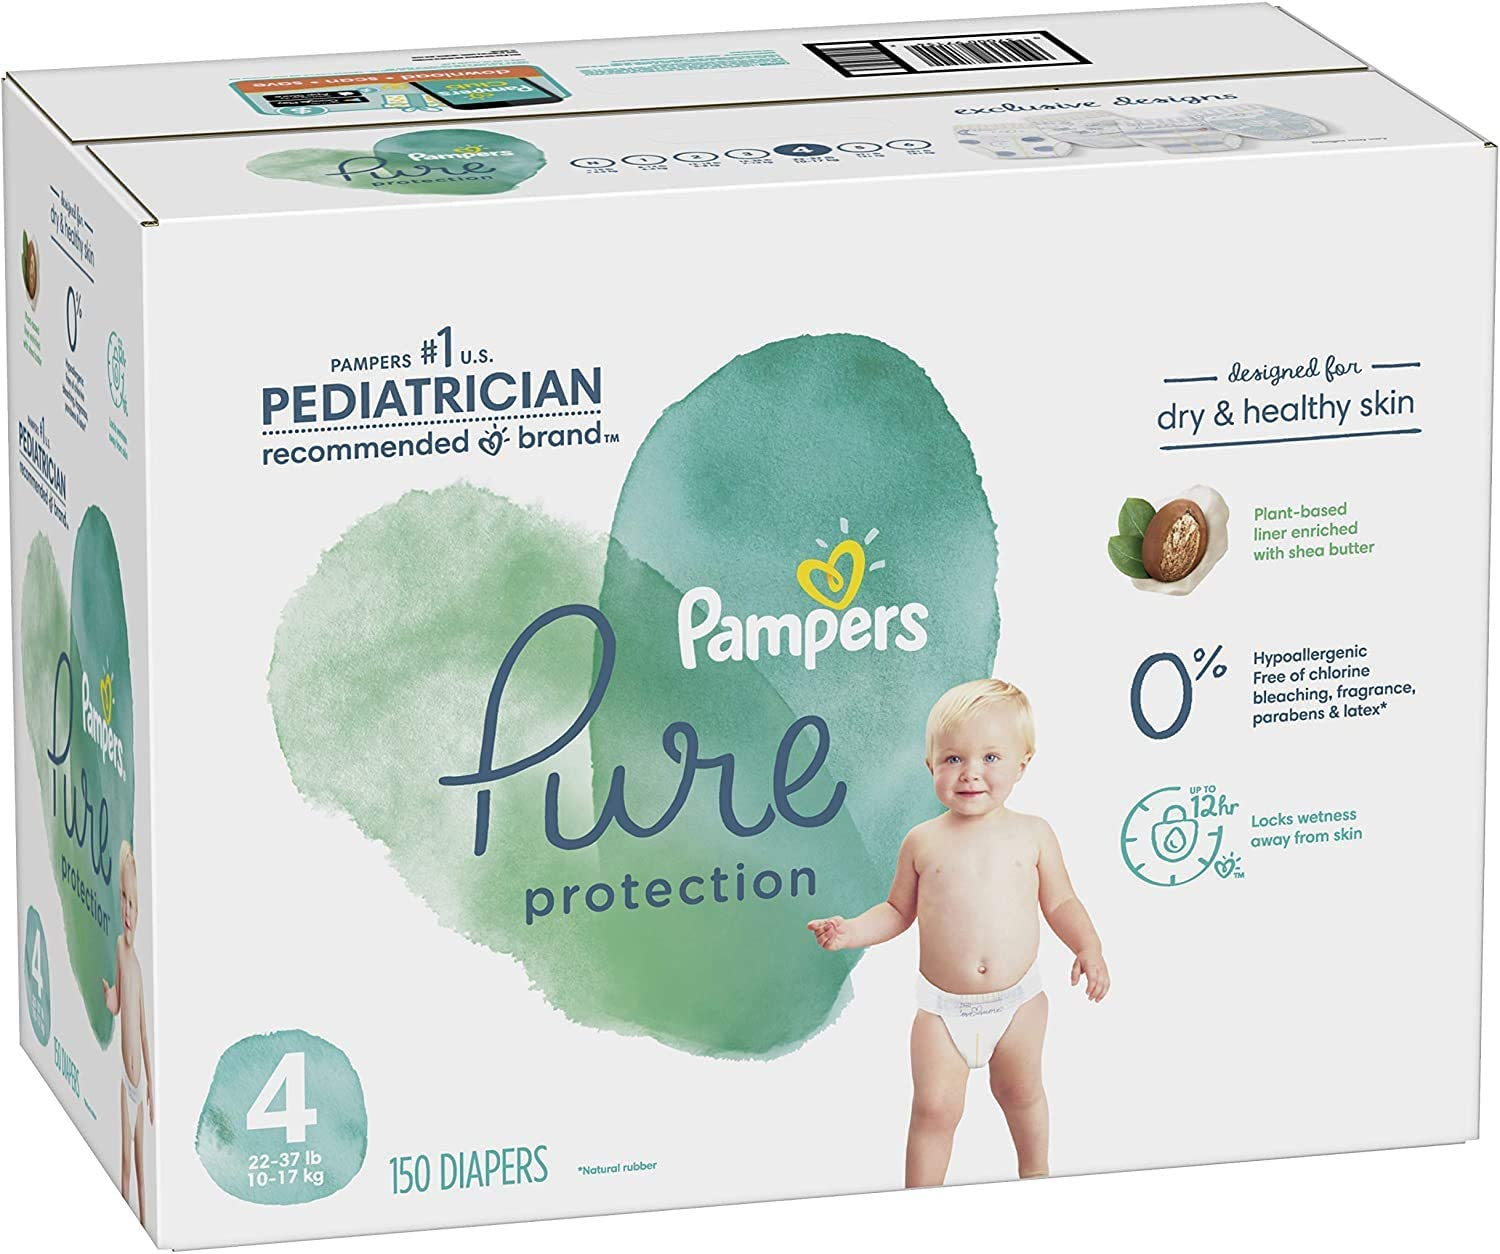 Diapers Size 4, 150 Count - Pampers Pure Protection Disposable Baby Diapers, Hypoallergenic and Unscented Protection, ONE MONTH SUPPLY: Health & Personal Care